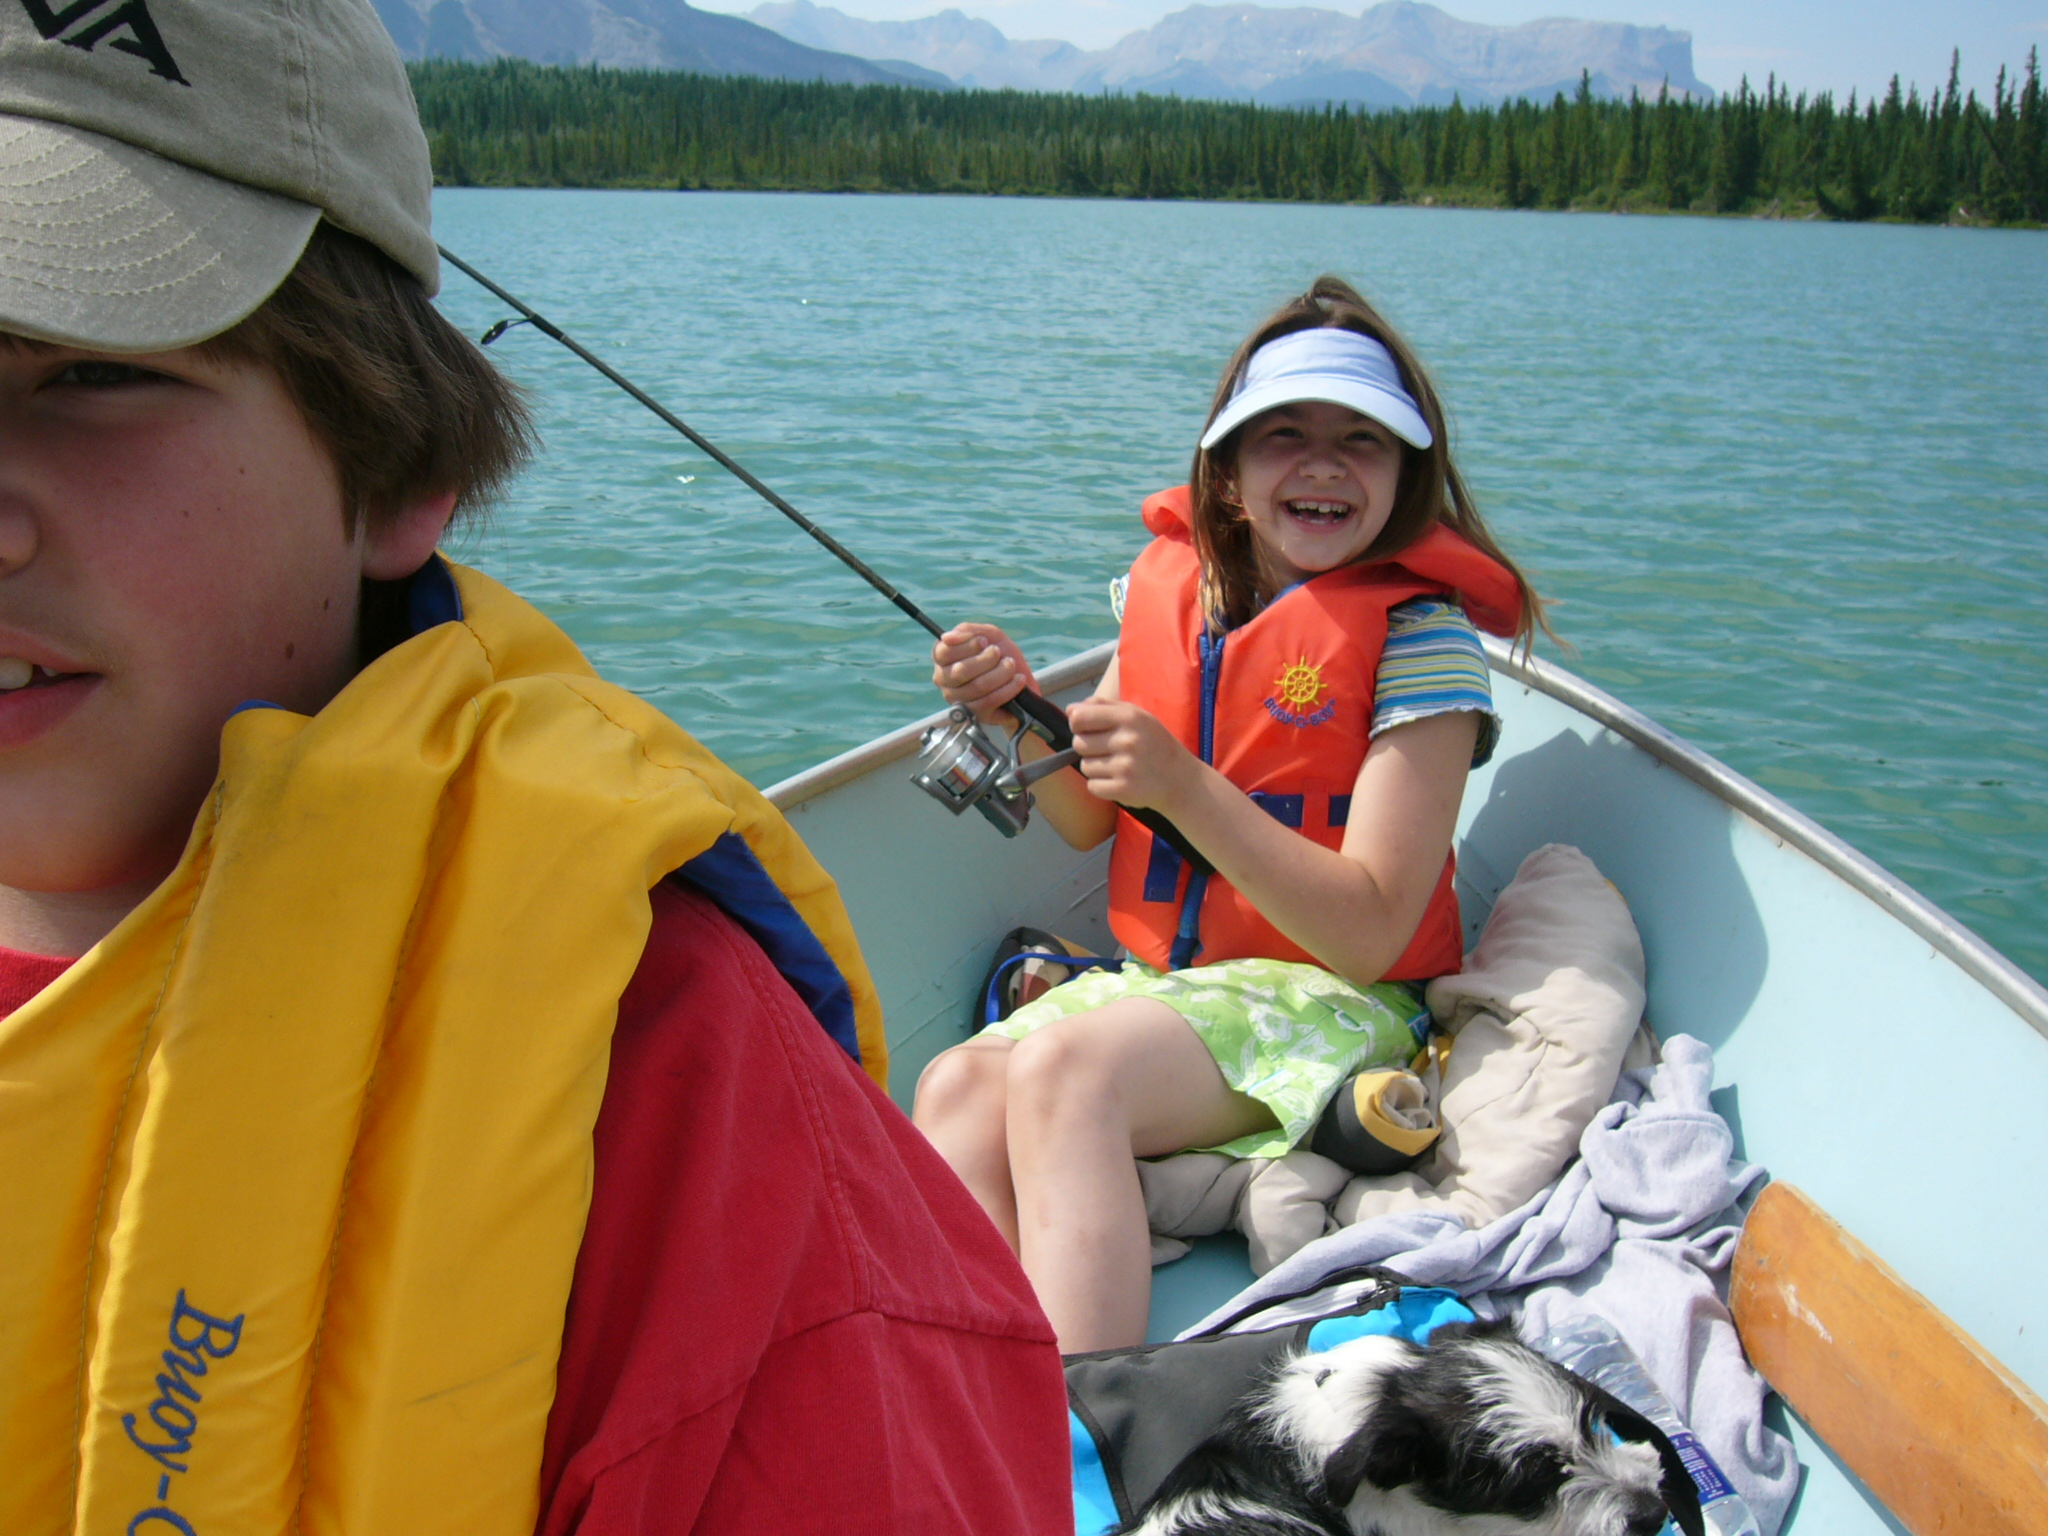 Fishing at Wildhorse Lake